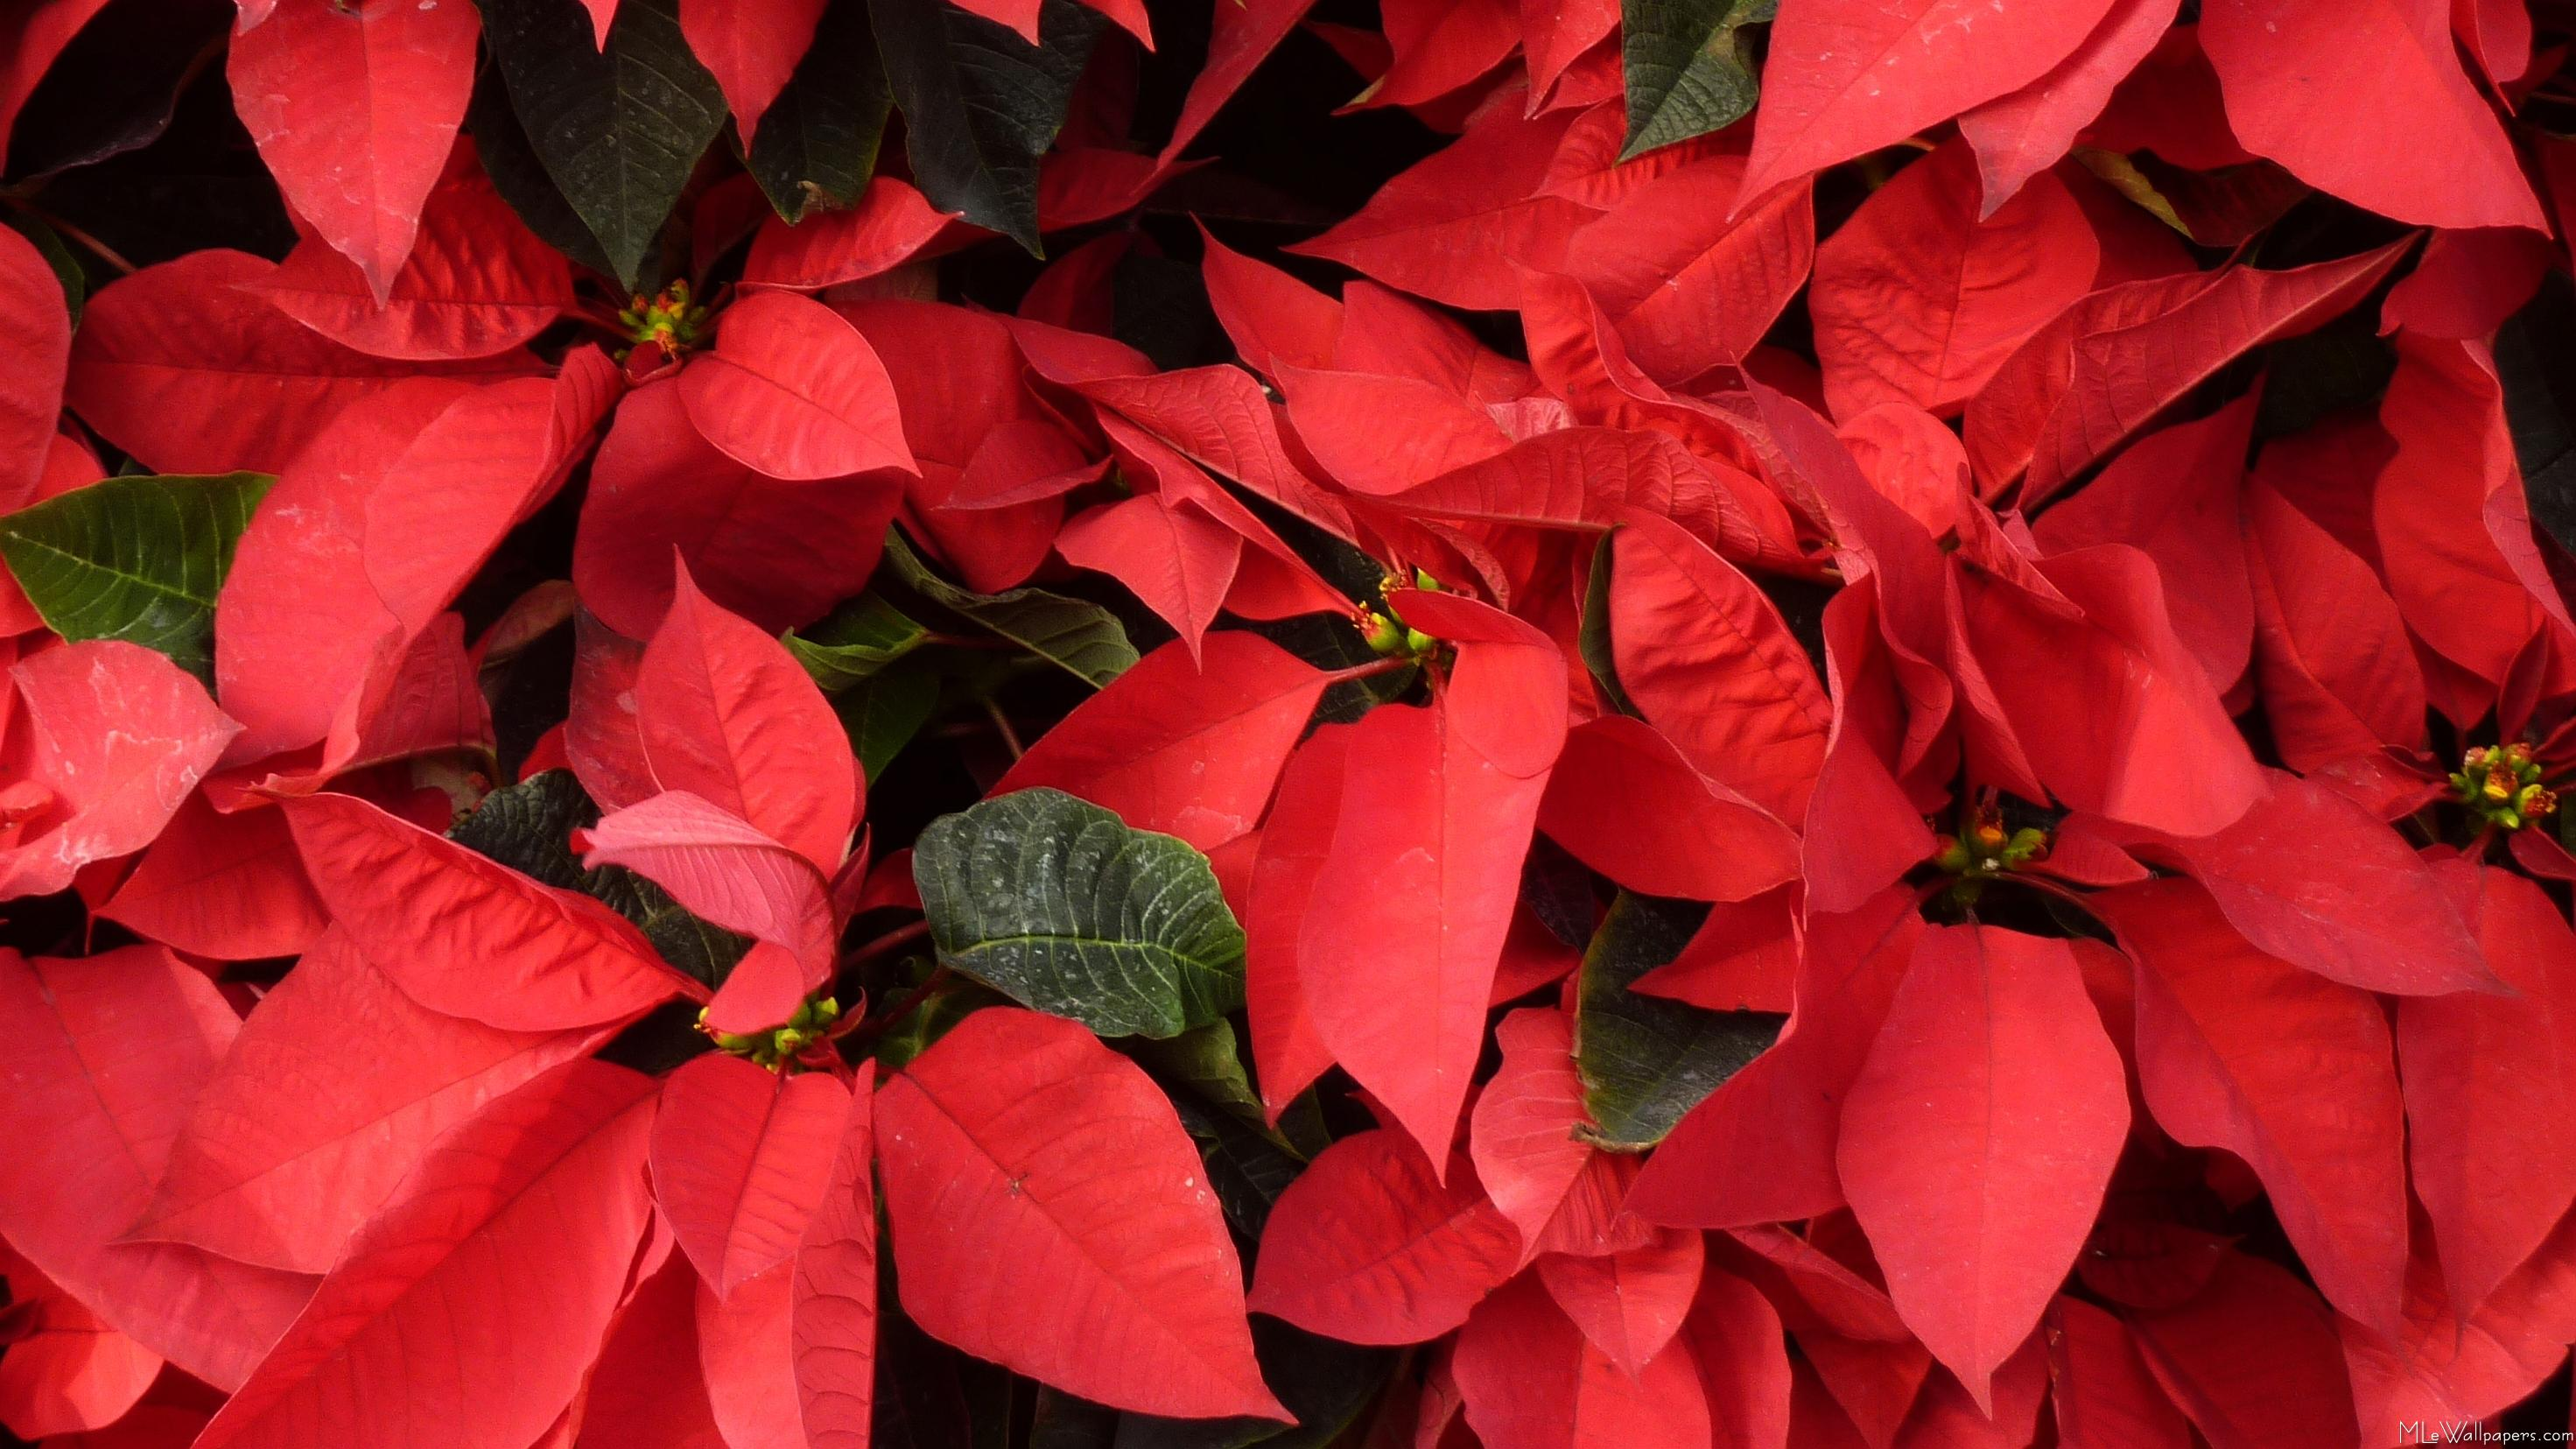 or red poinsettia - photo #7